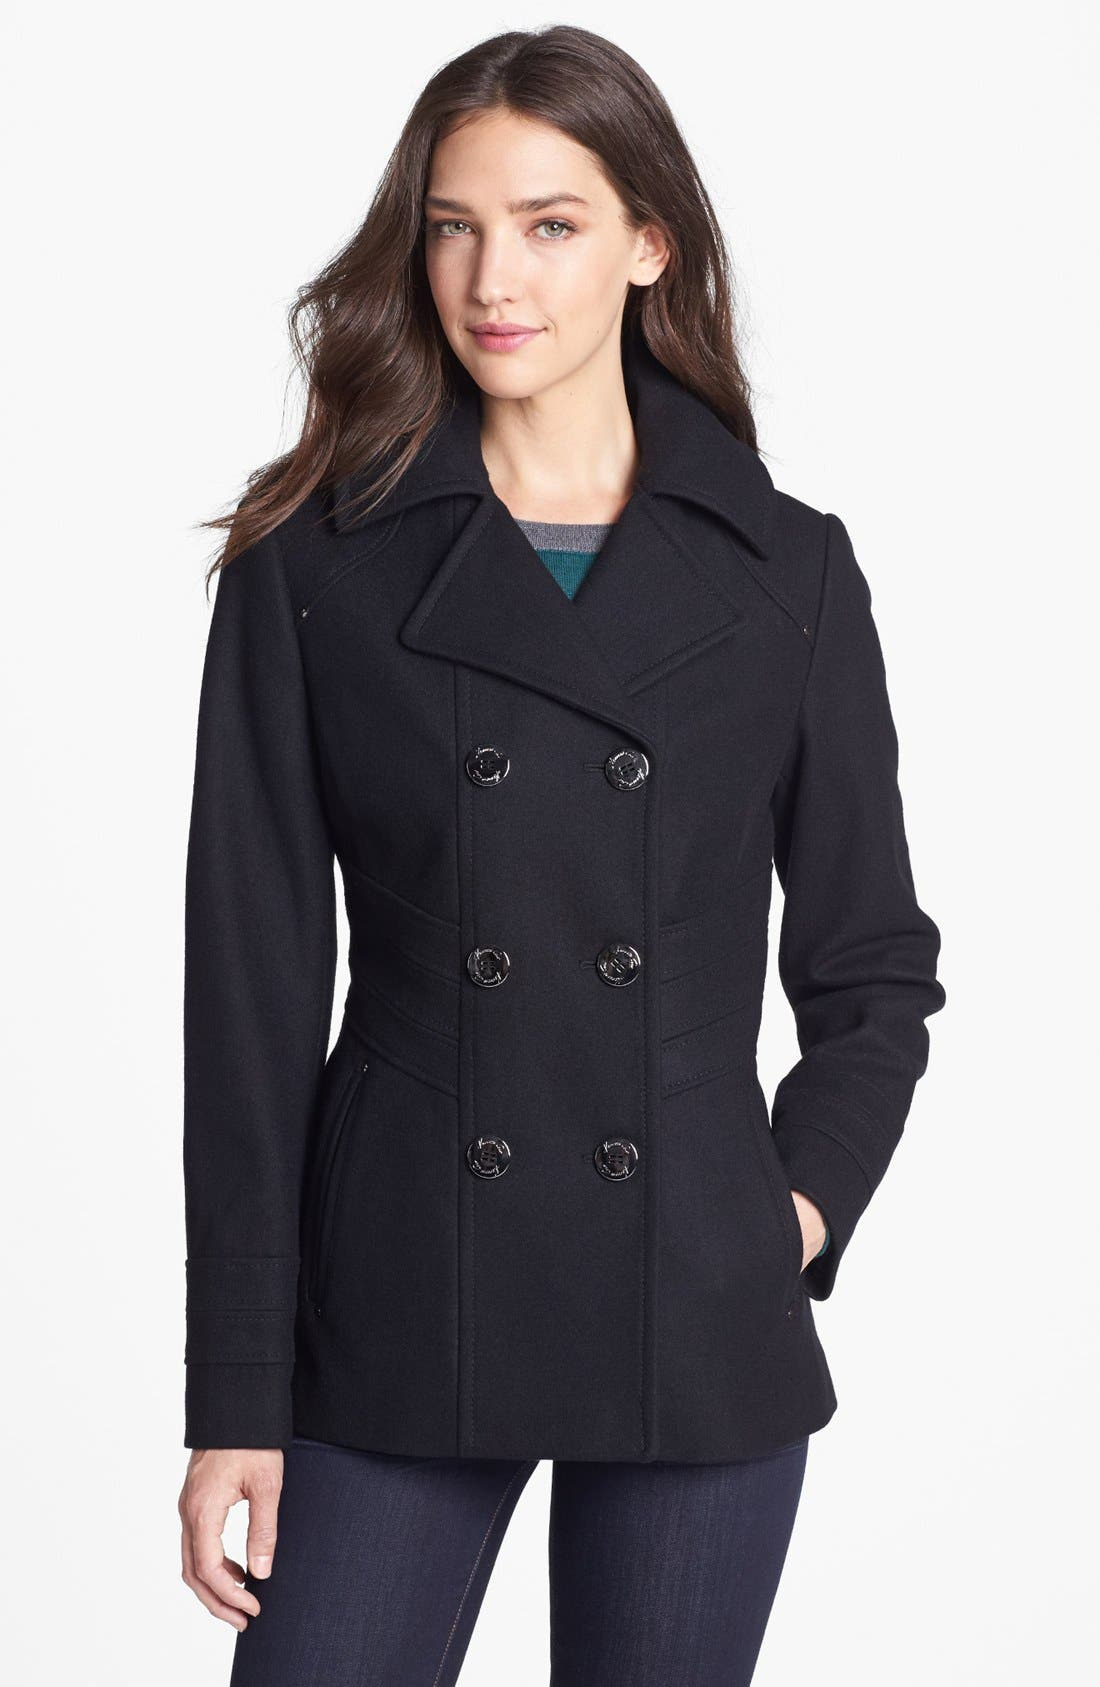 Alternate Image 1 Selected - Kenneth Cole New York Paneled Waist Peacoat (Regular & Petite)